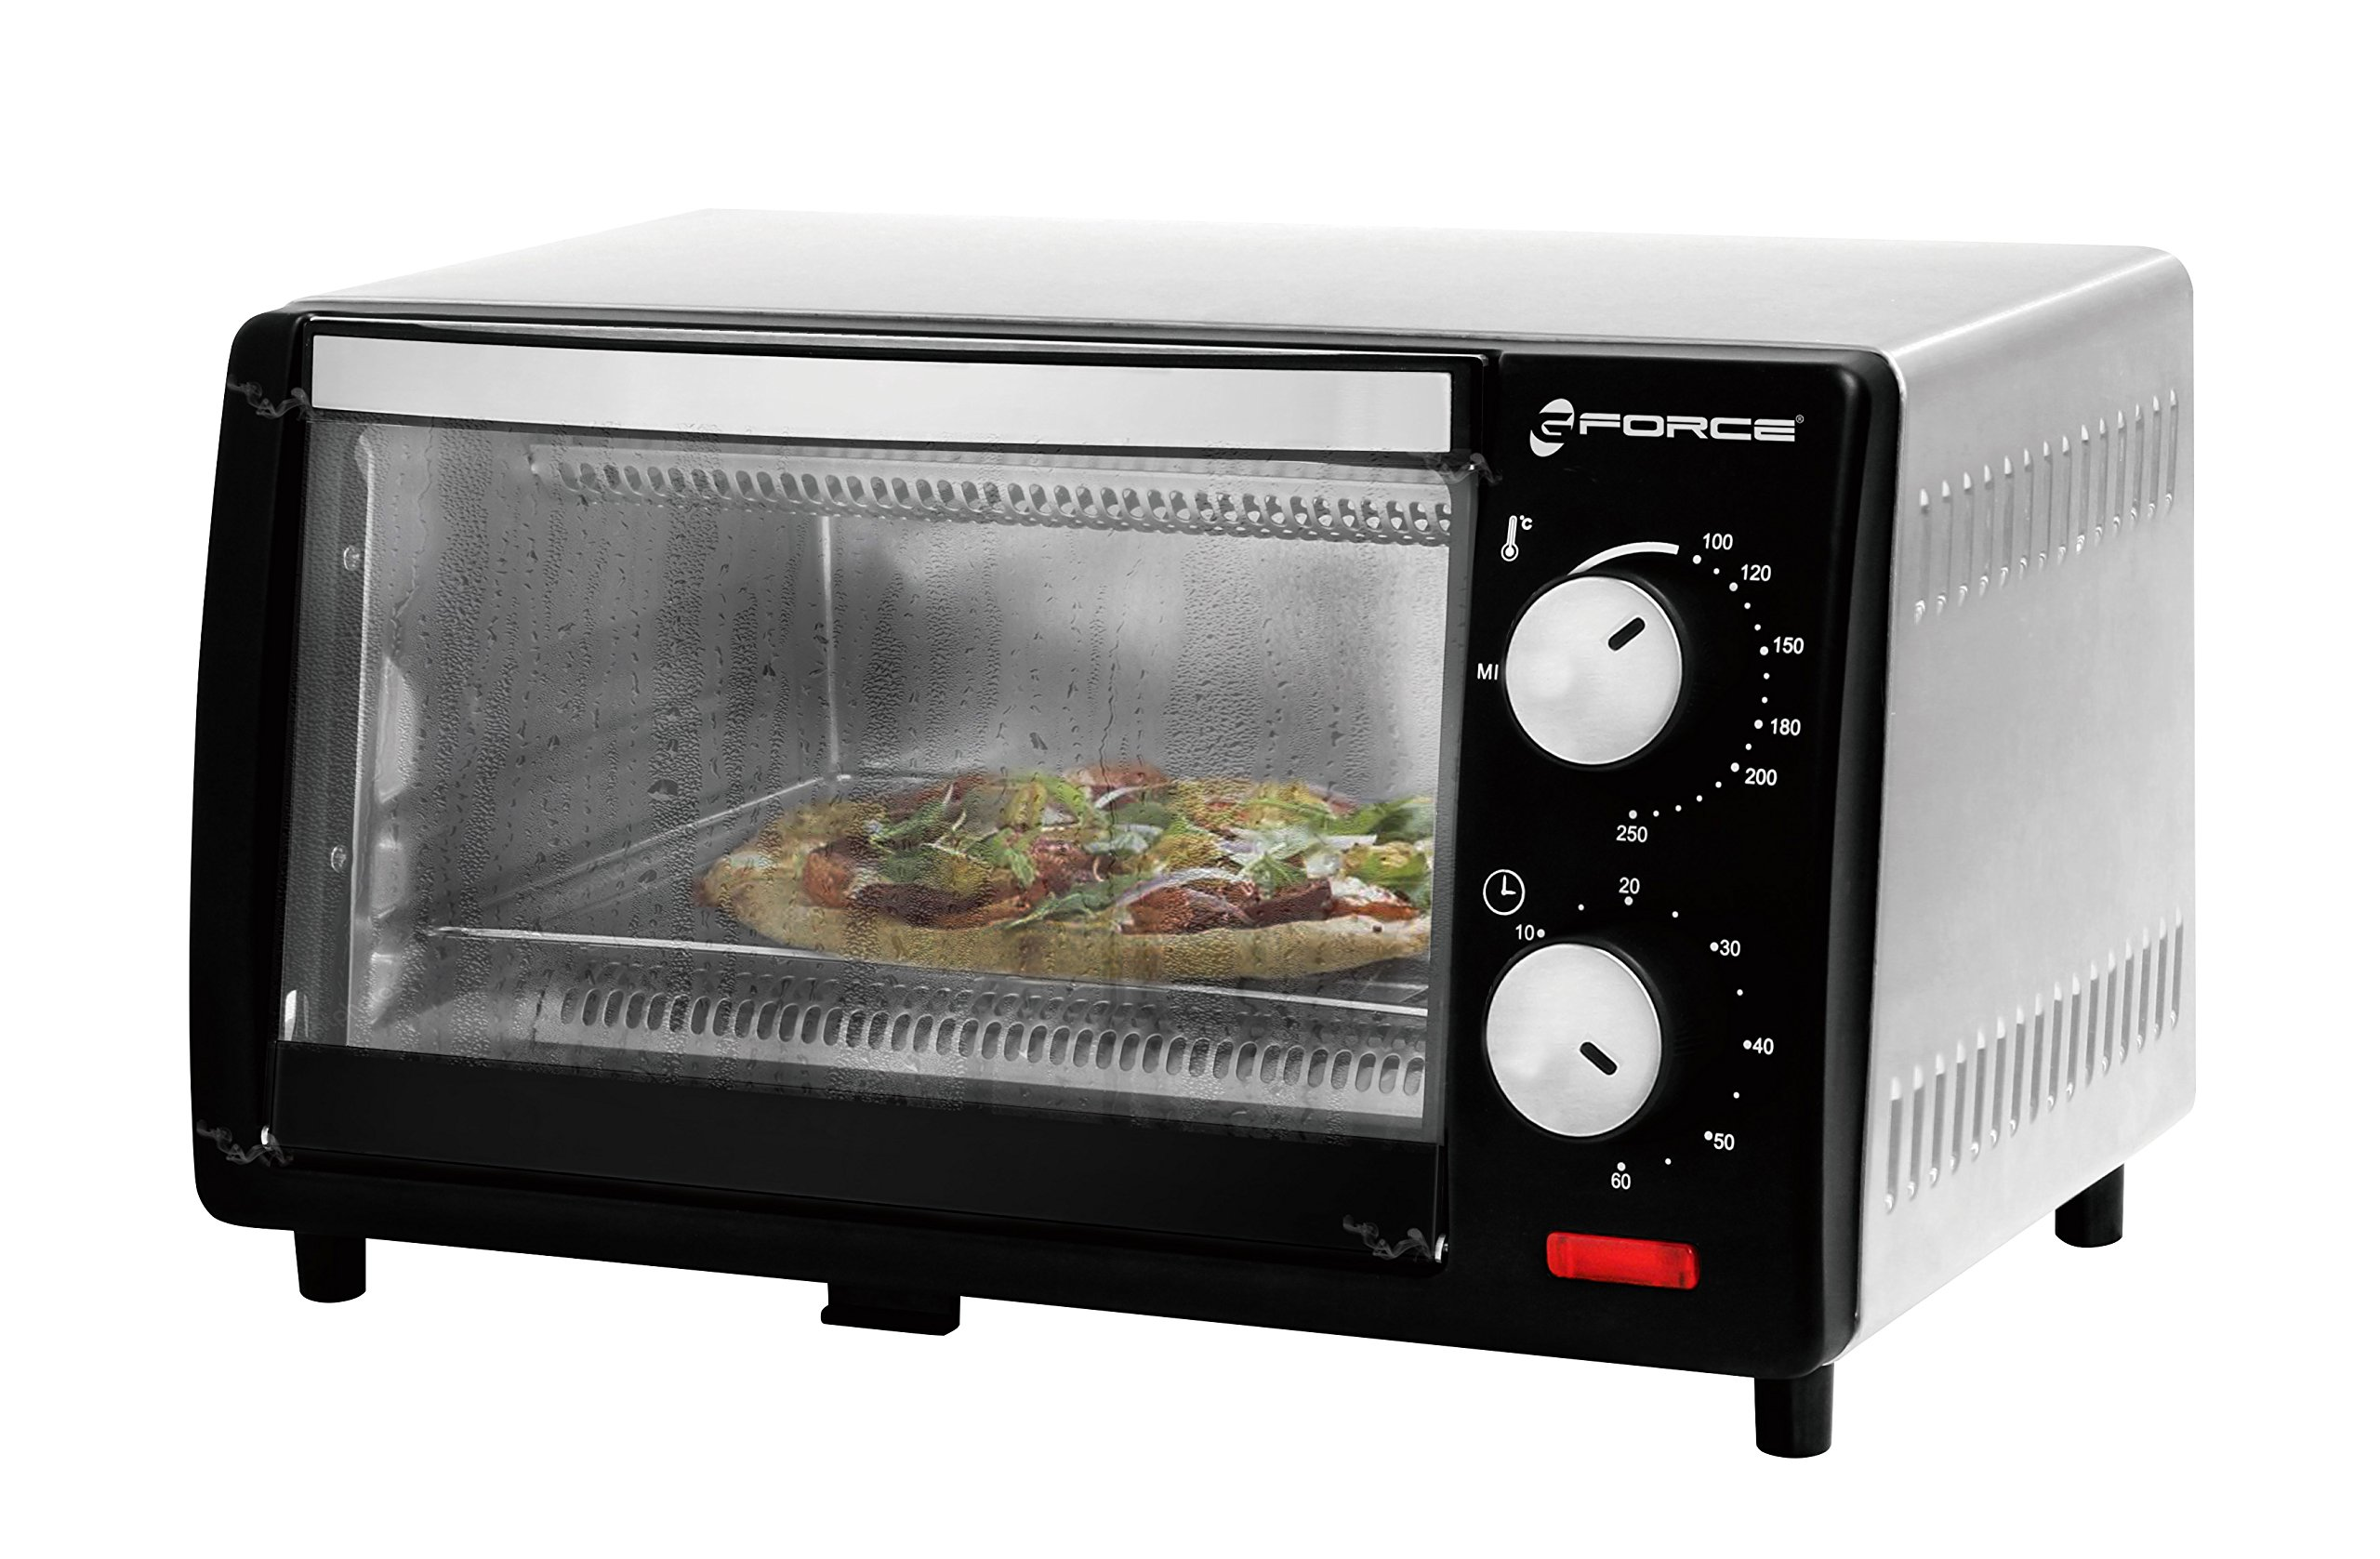 GForce Toaster Oven, Stainless Steel 9-Liter, 800W, 120-Volt (USA&CANADA) – ETL Approved